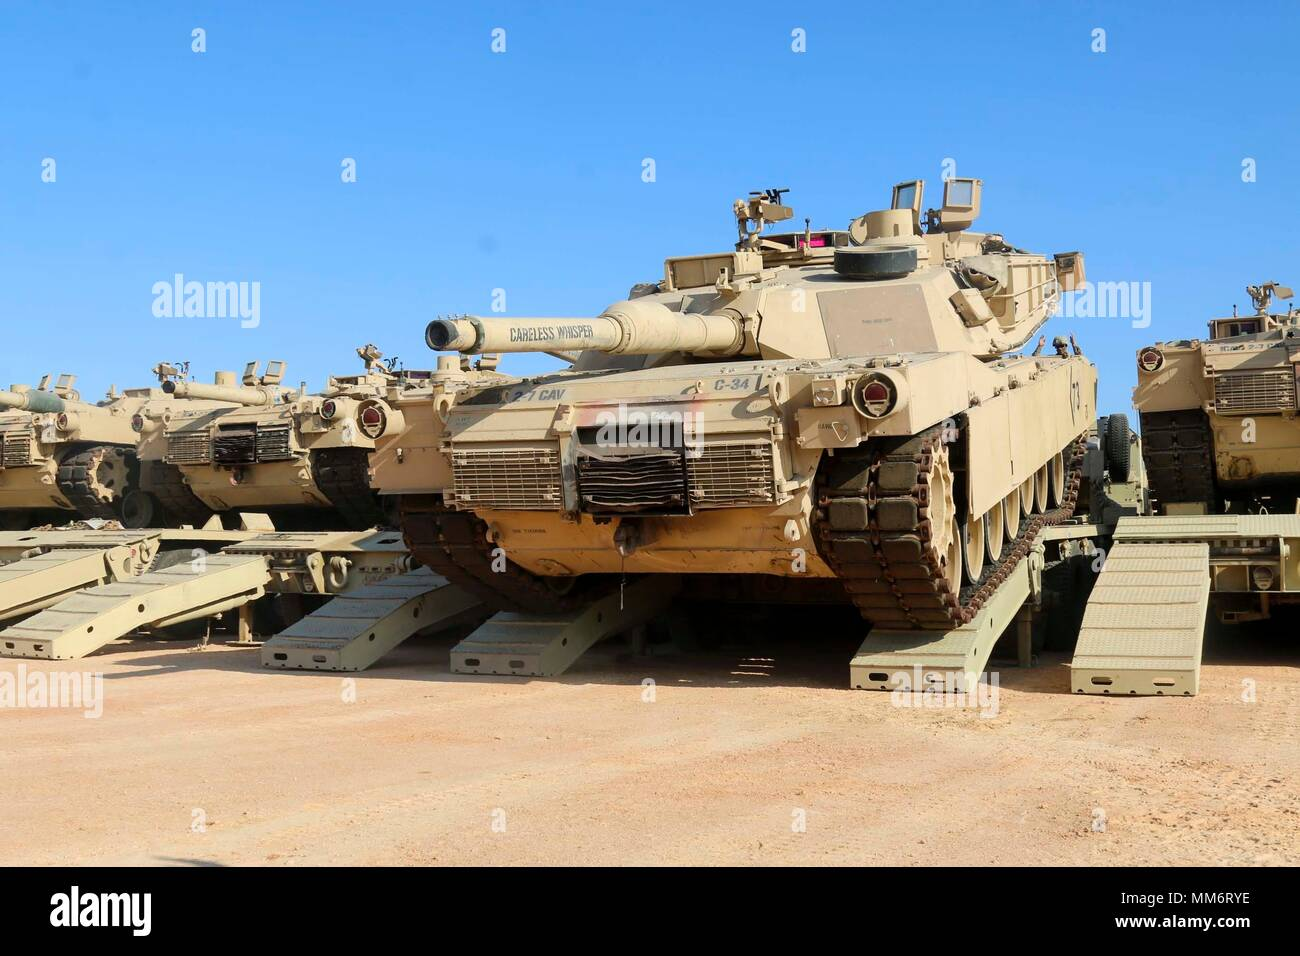 Abrams Tank Stock Photos & Abrams Tank Stock Images - Alamy